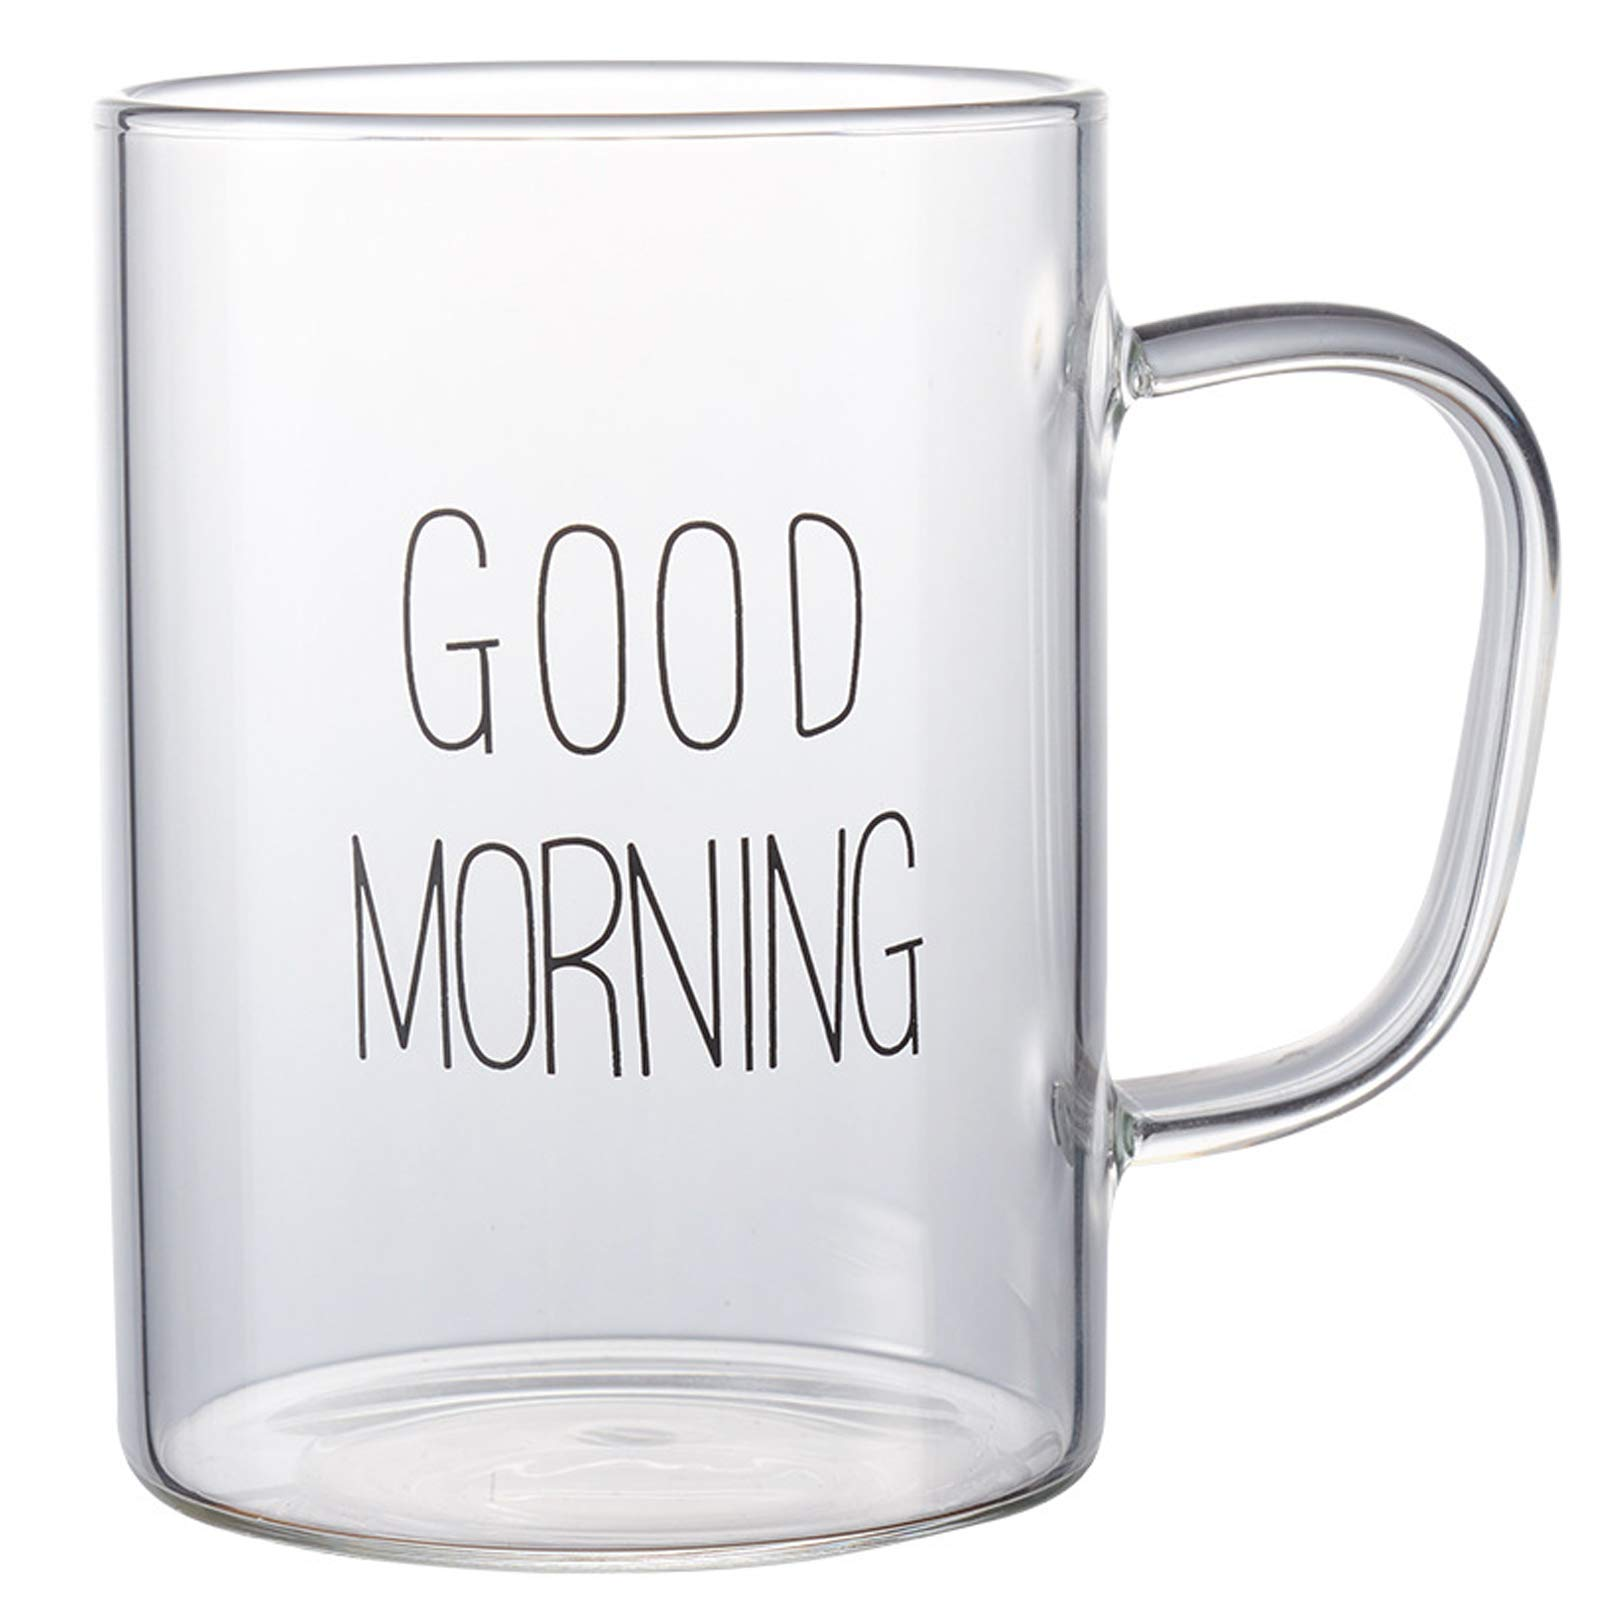 Homeyes 460 ML 15.5 OZ Good Morning Glass Cup For Coffee/Beer/Milk/Tea/Water